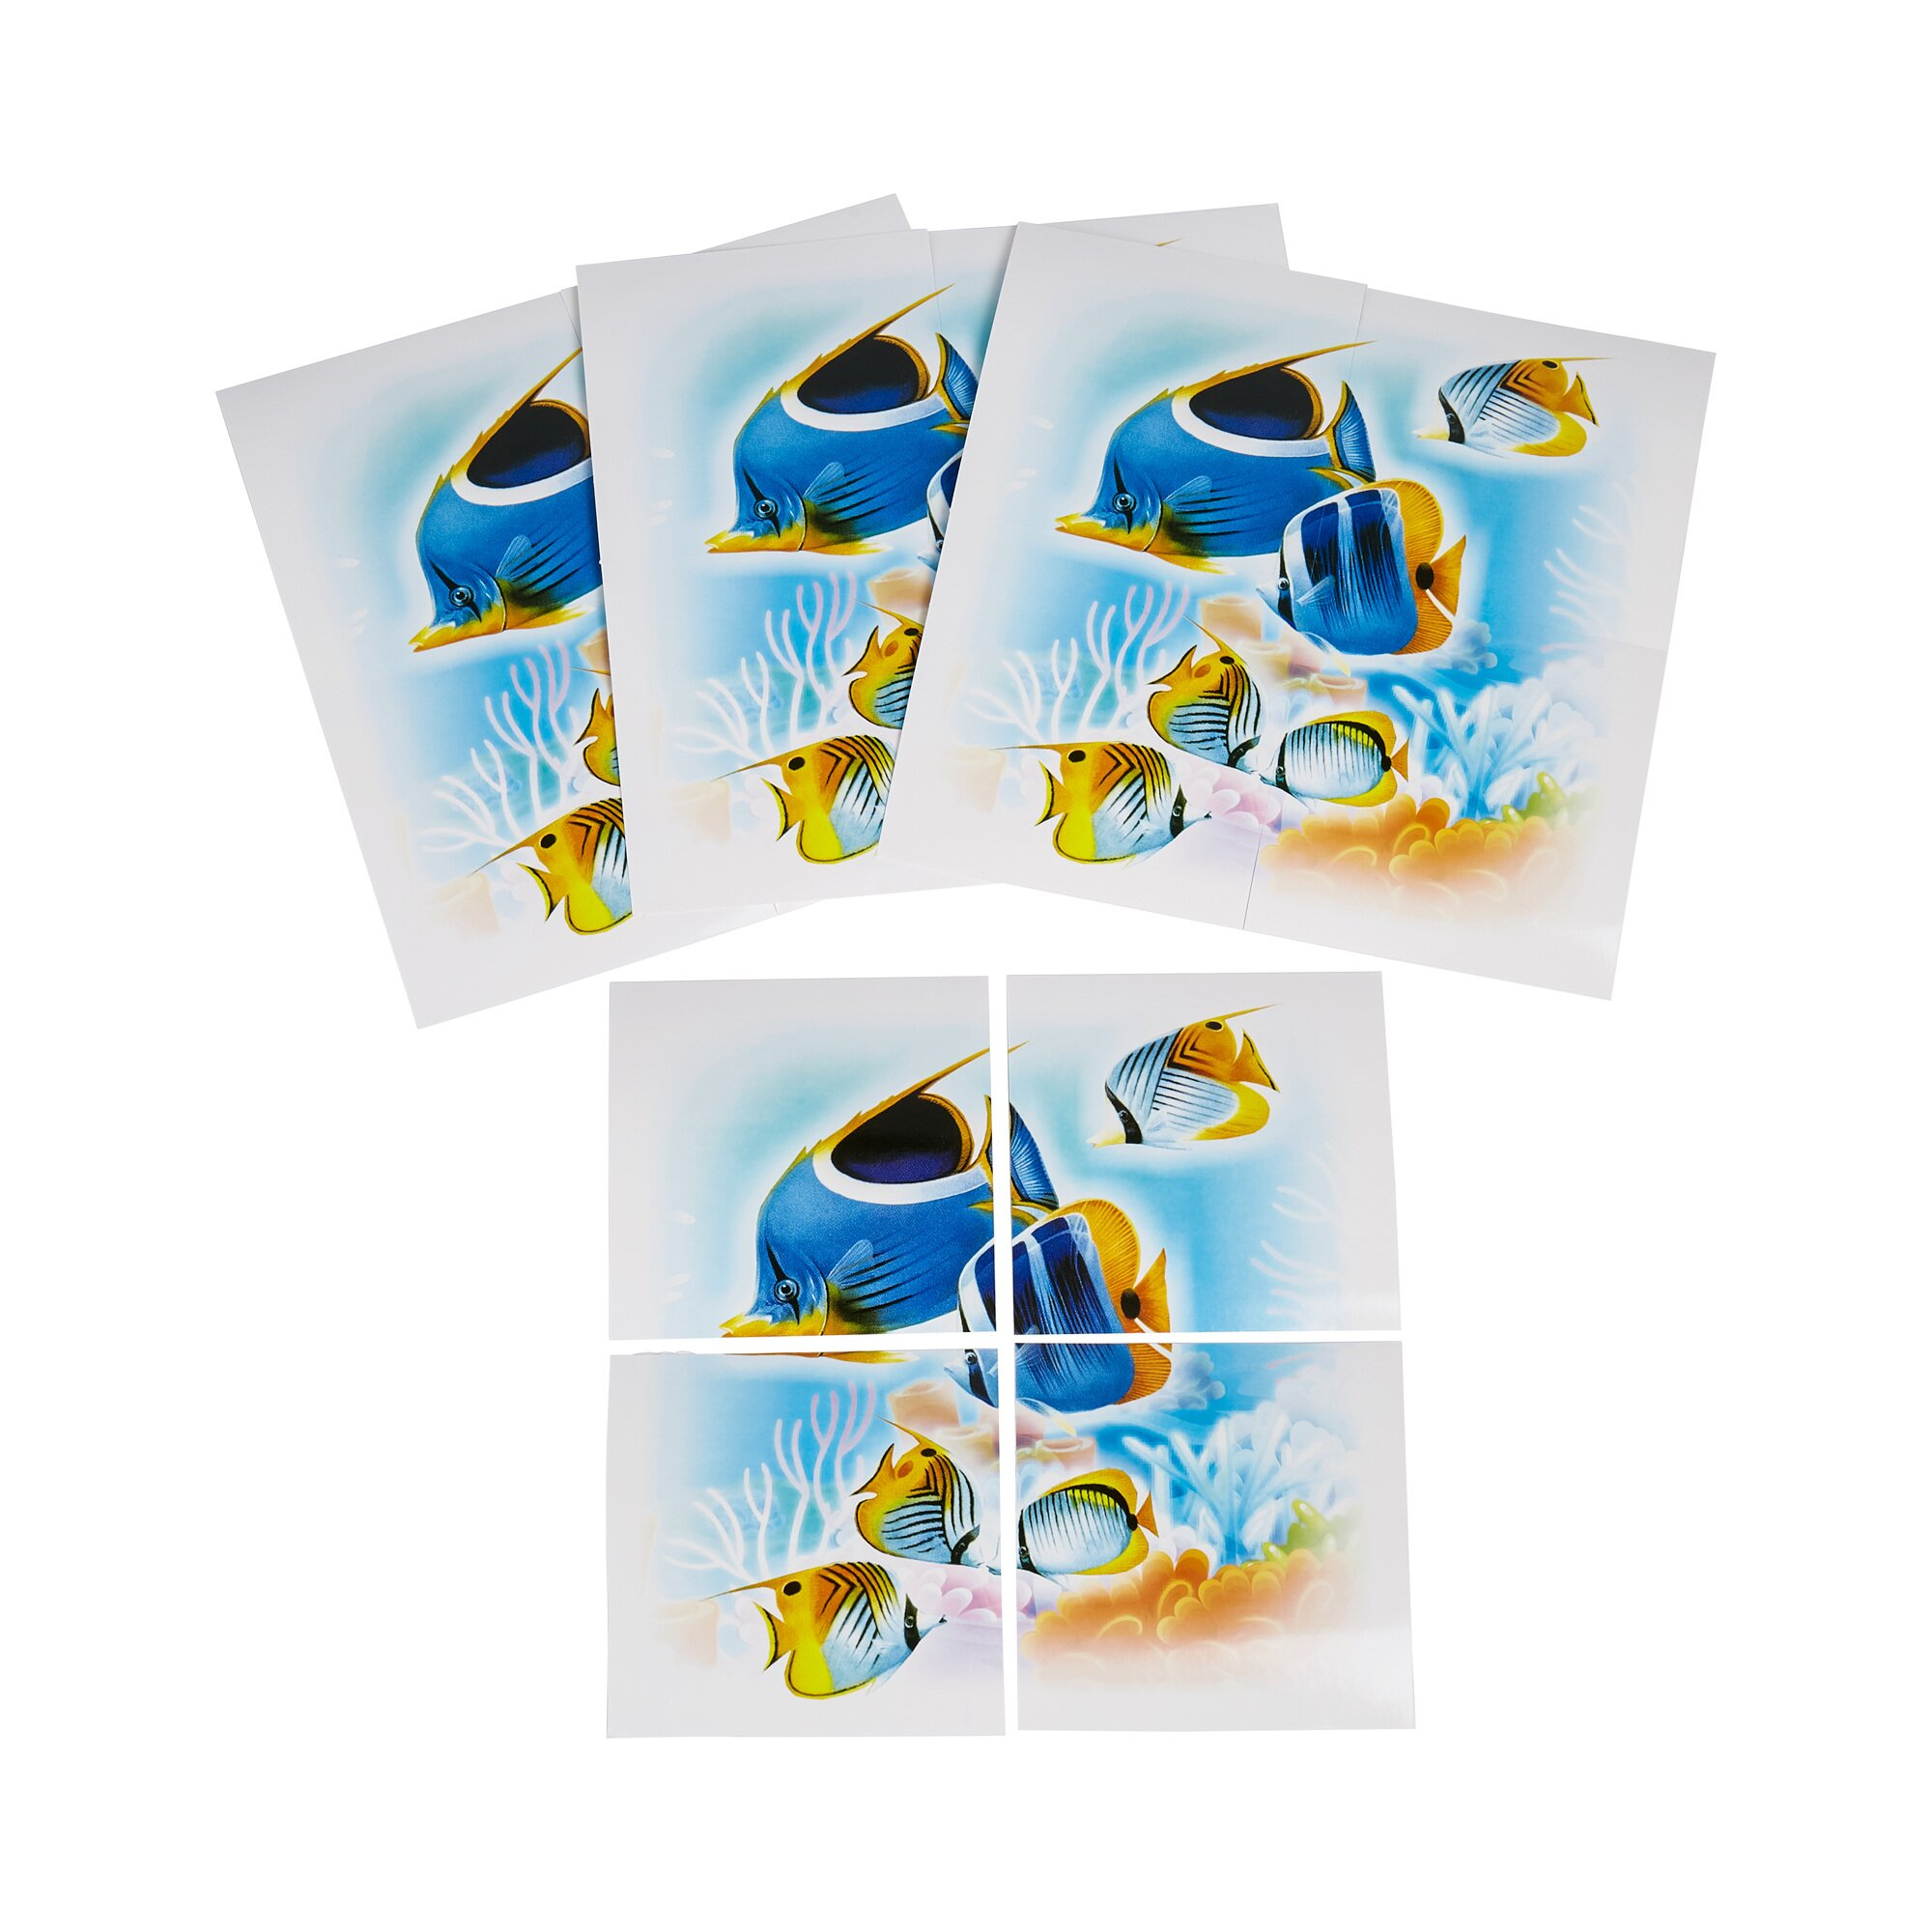 Image of Fliesen-Sticker Unterwasserwelt, 1 Set